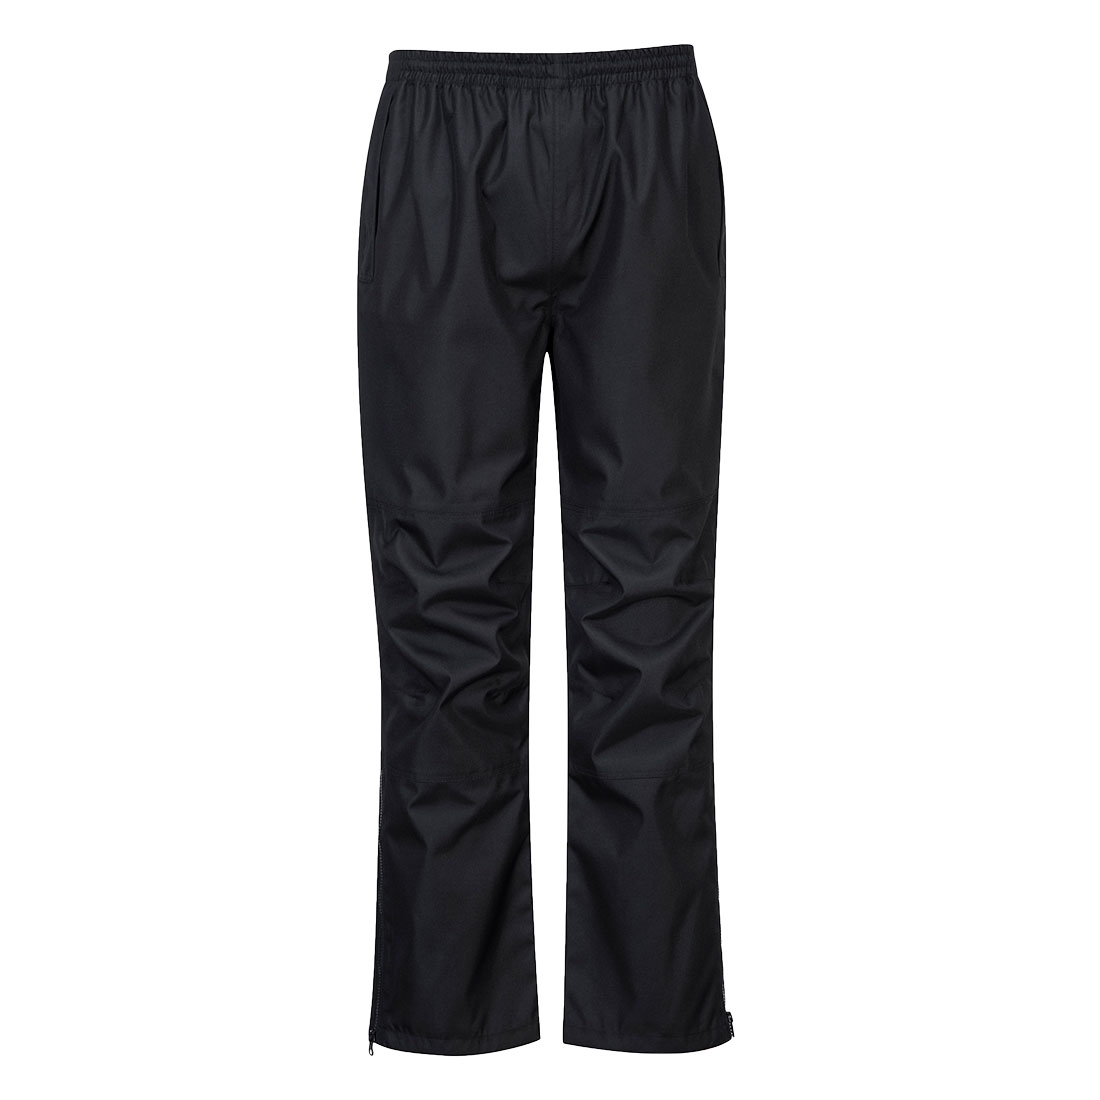 Vanquish Trouser Black Medium